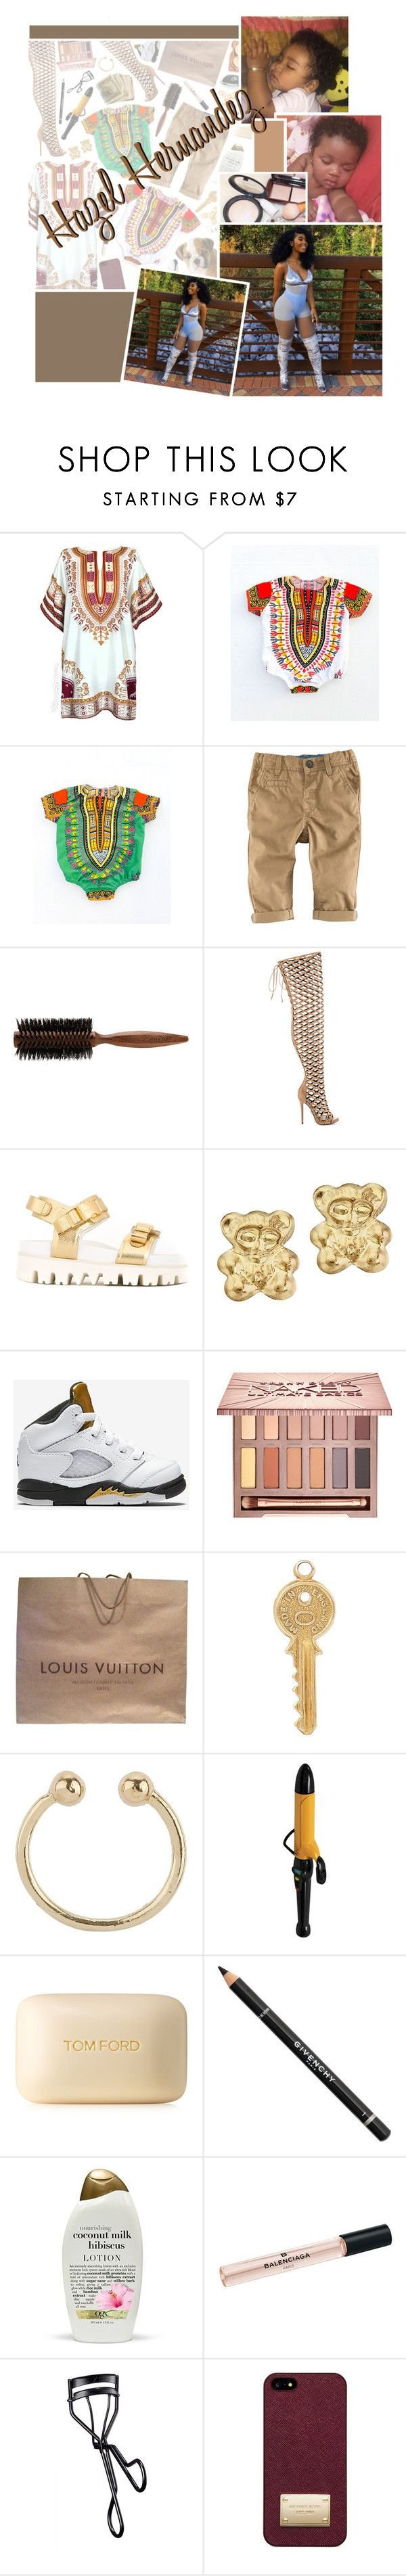 """❁ - Sɑid she wɑnnɑ roll with me ɑnd smoke up ɑll my weed , I sɑid bɑby just buy dutches cɑuse you cɑn' t smoke for free"" by ouixocean ❤ liked on Polyvore featuring beauty, H&M, Phyto, Lust For Life, BUSCEMI, BillyTheTree, NIKE, Urban Decay, Louis Vuitton and Annina Vogel"